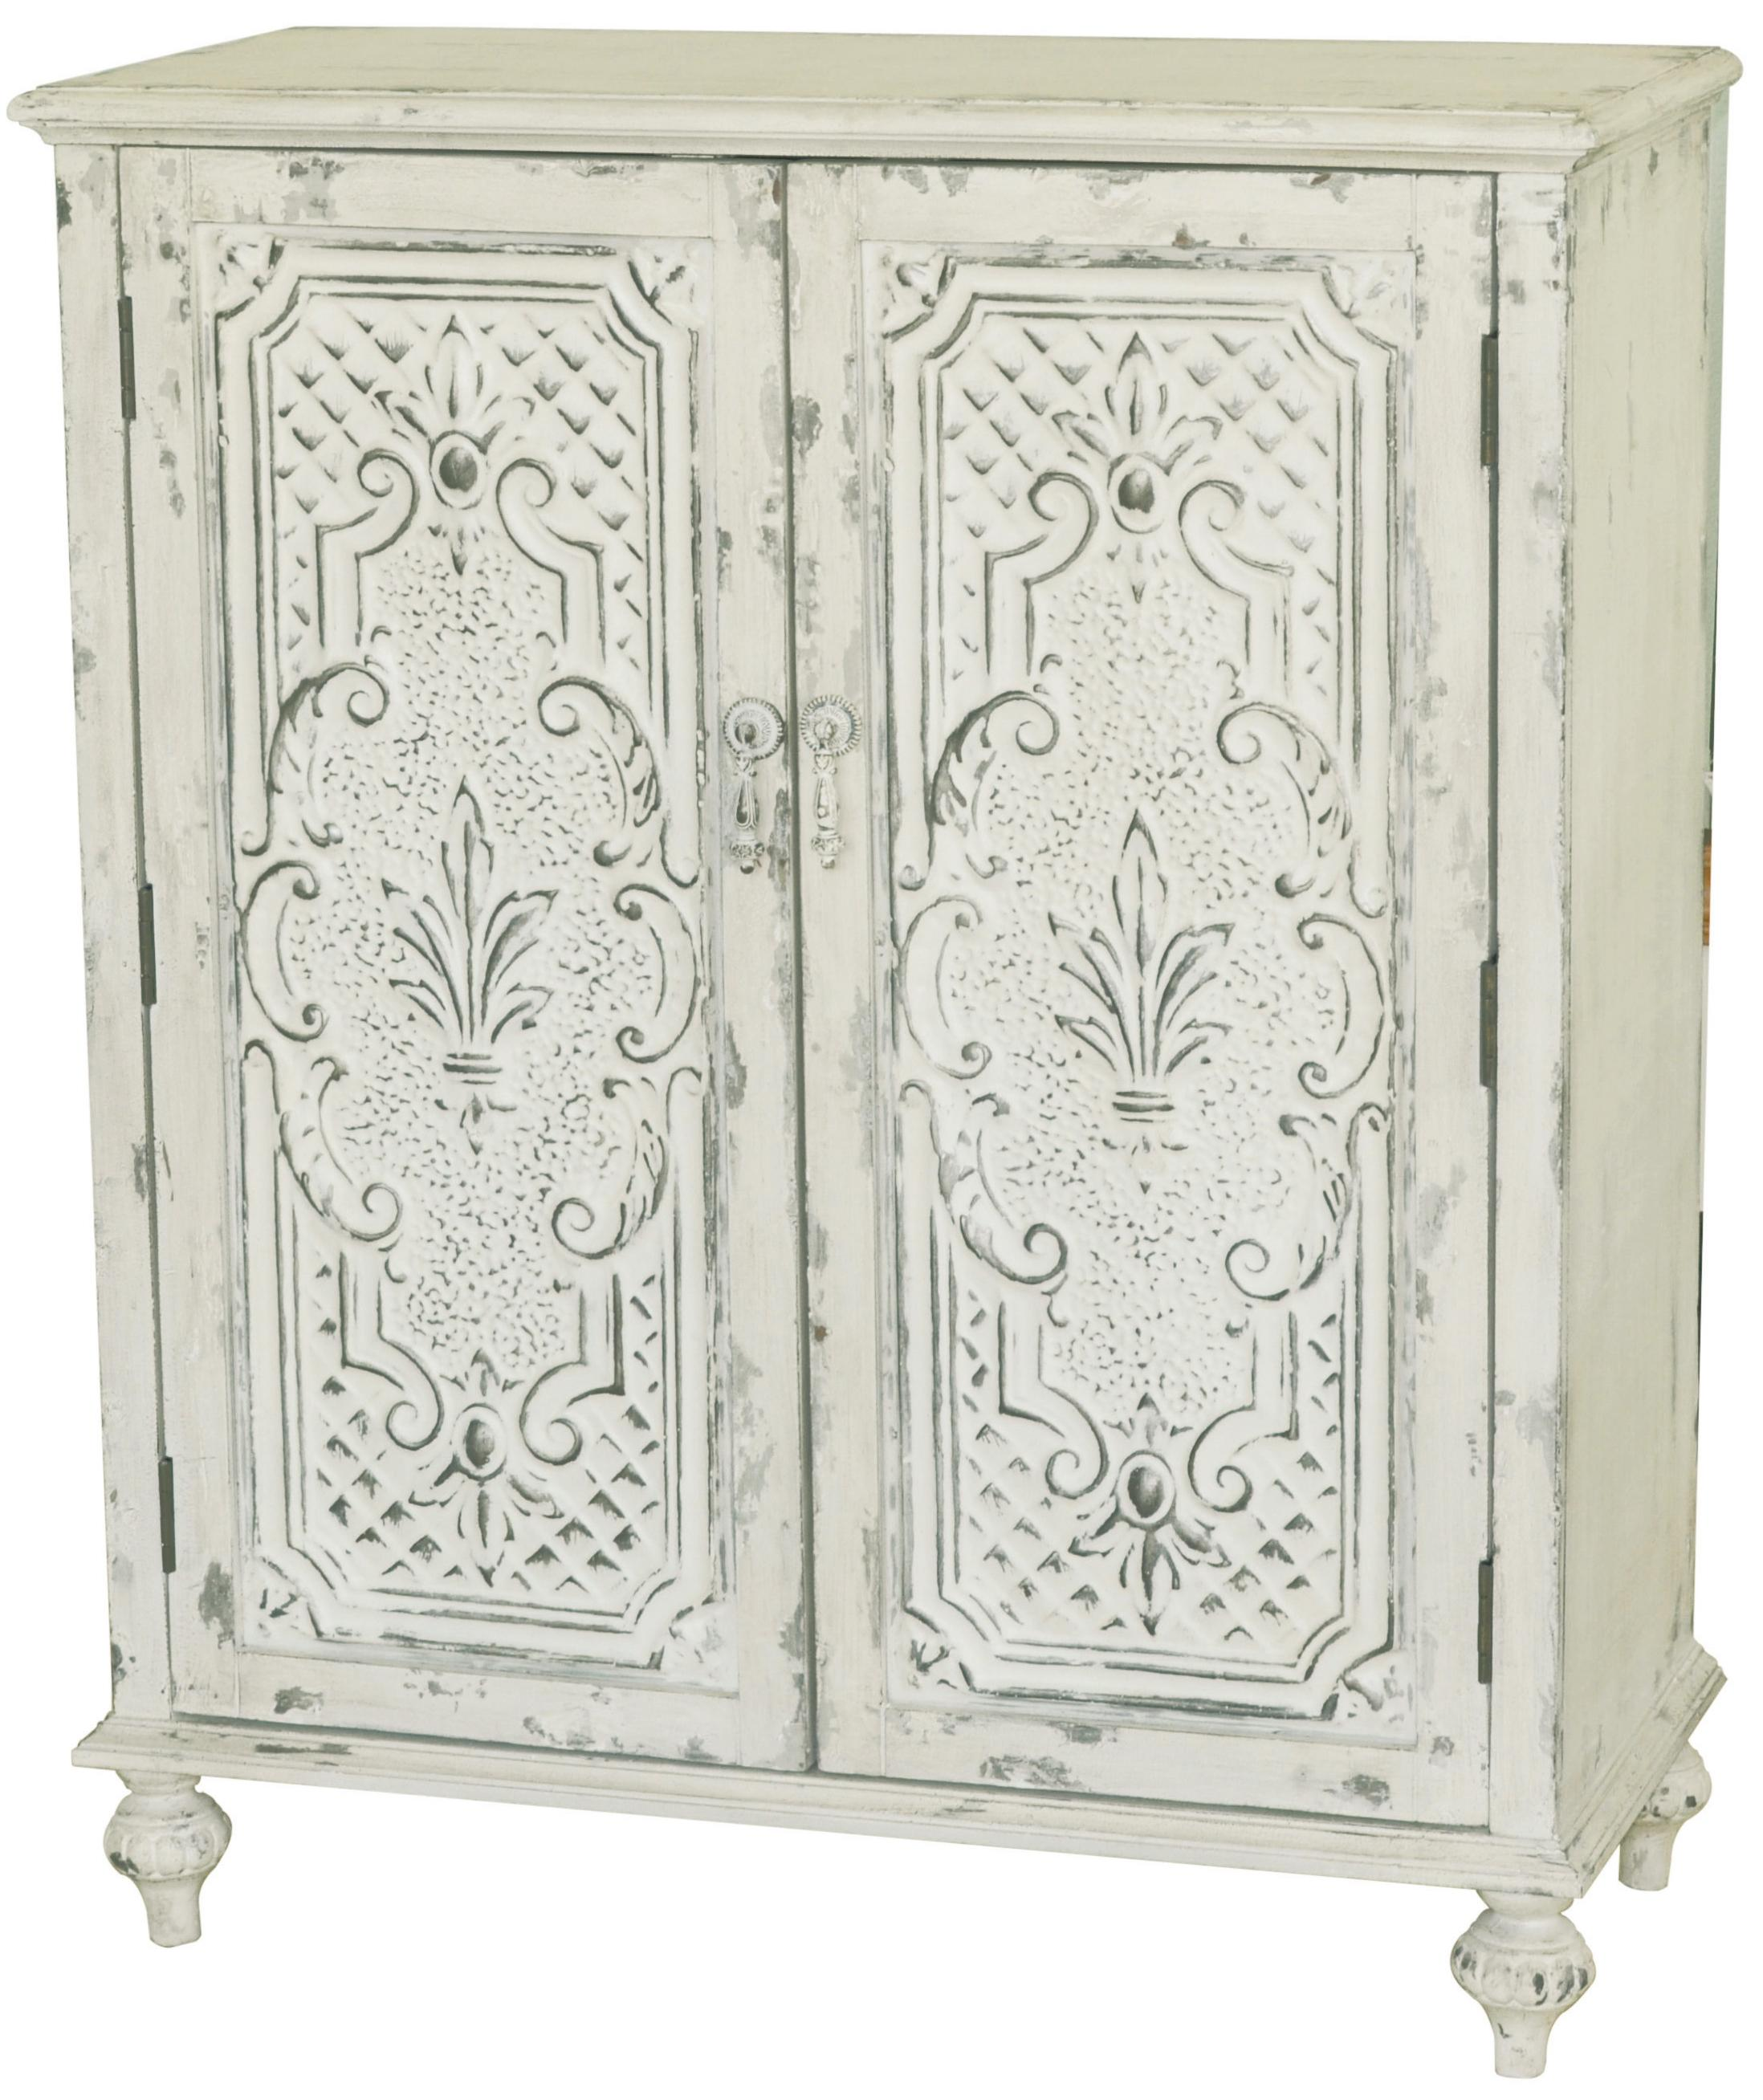 Pulaski Furniture Accents Occasional Cabinets - Item Number: 641033